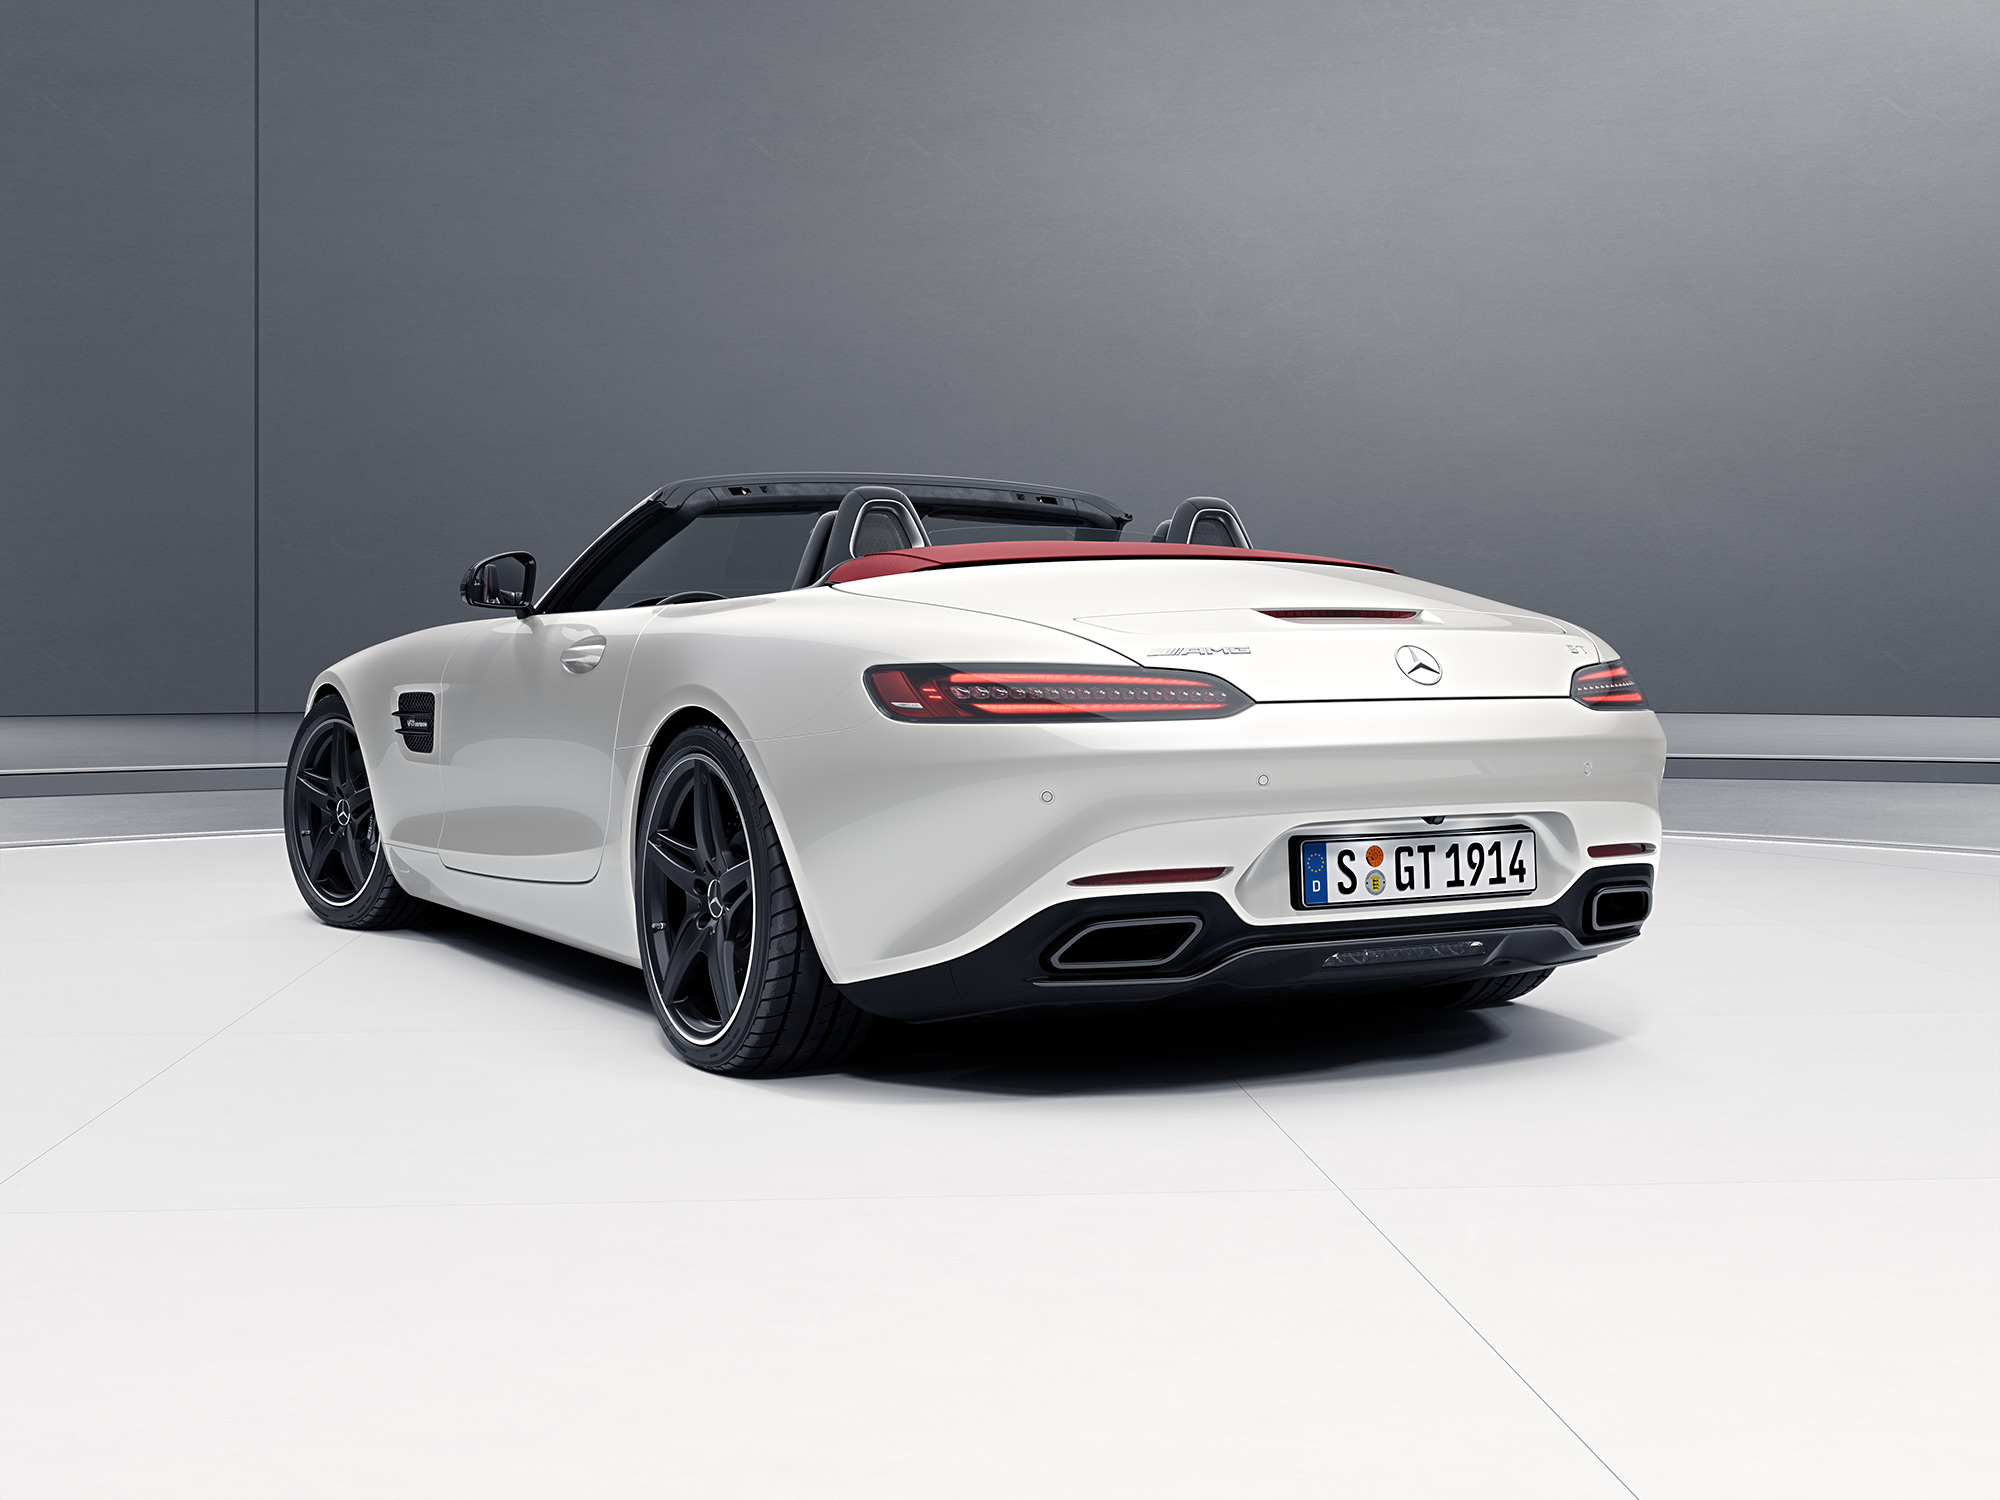 mercedes benz amg gt roadster 2017 4 0l biturbo gt c in bahrain new car prices specs reviews. Black Bedroom Furniture Sets. Home Design Ideas